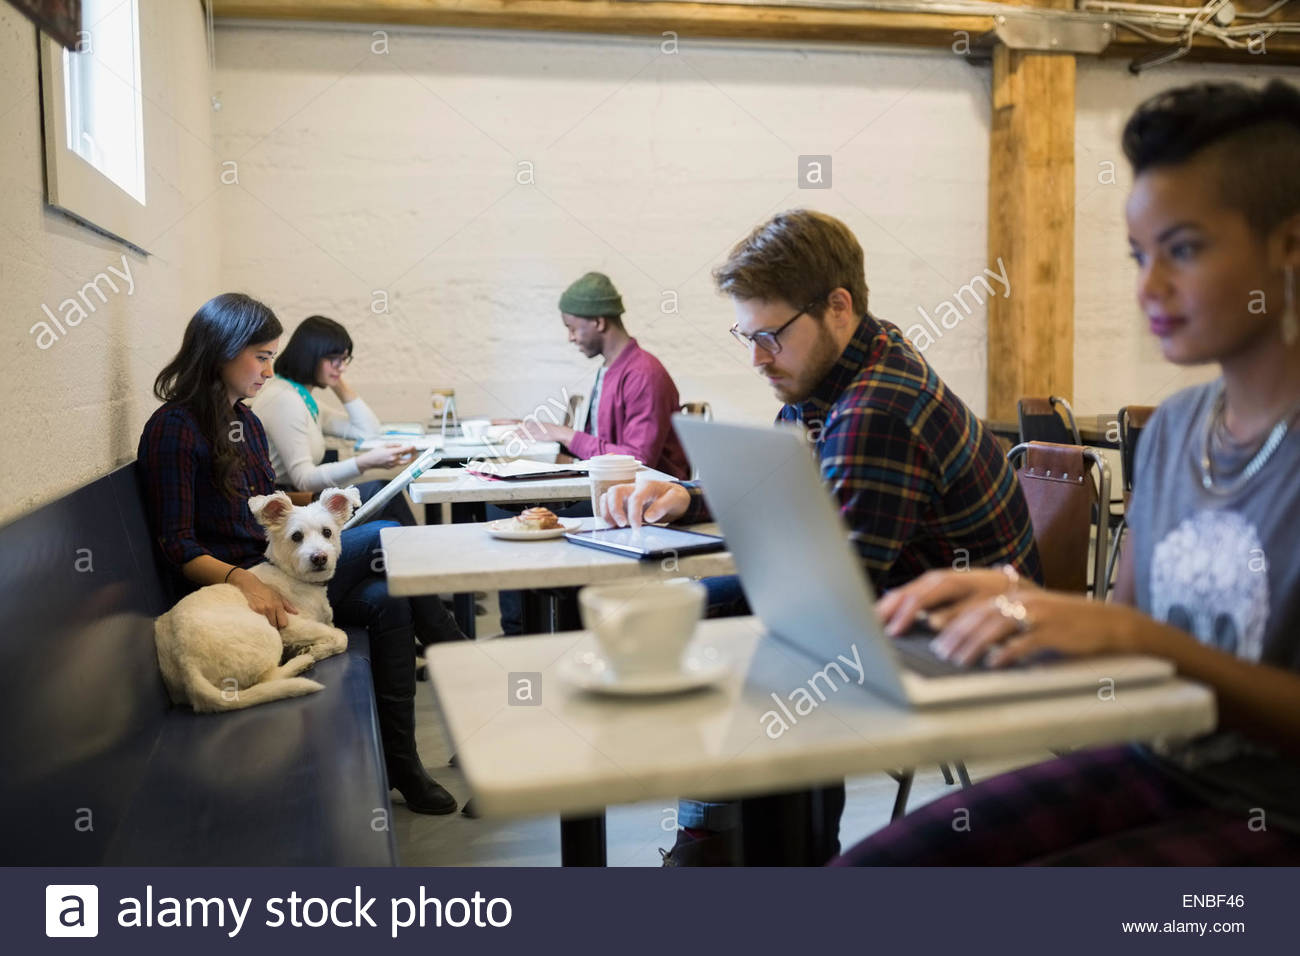 People and dogs at tables in cafes - Stock Image